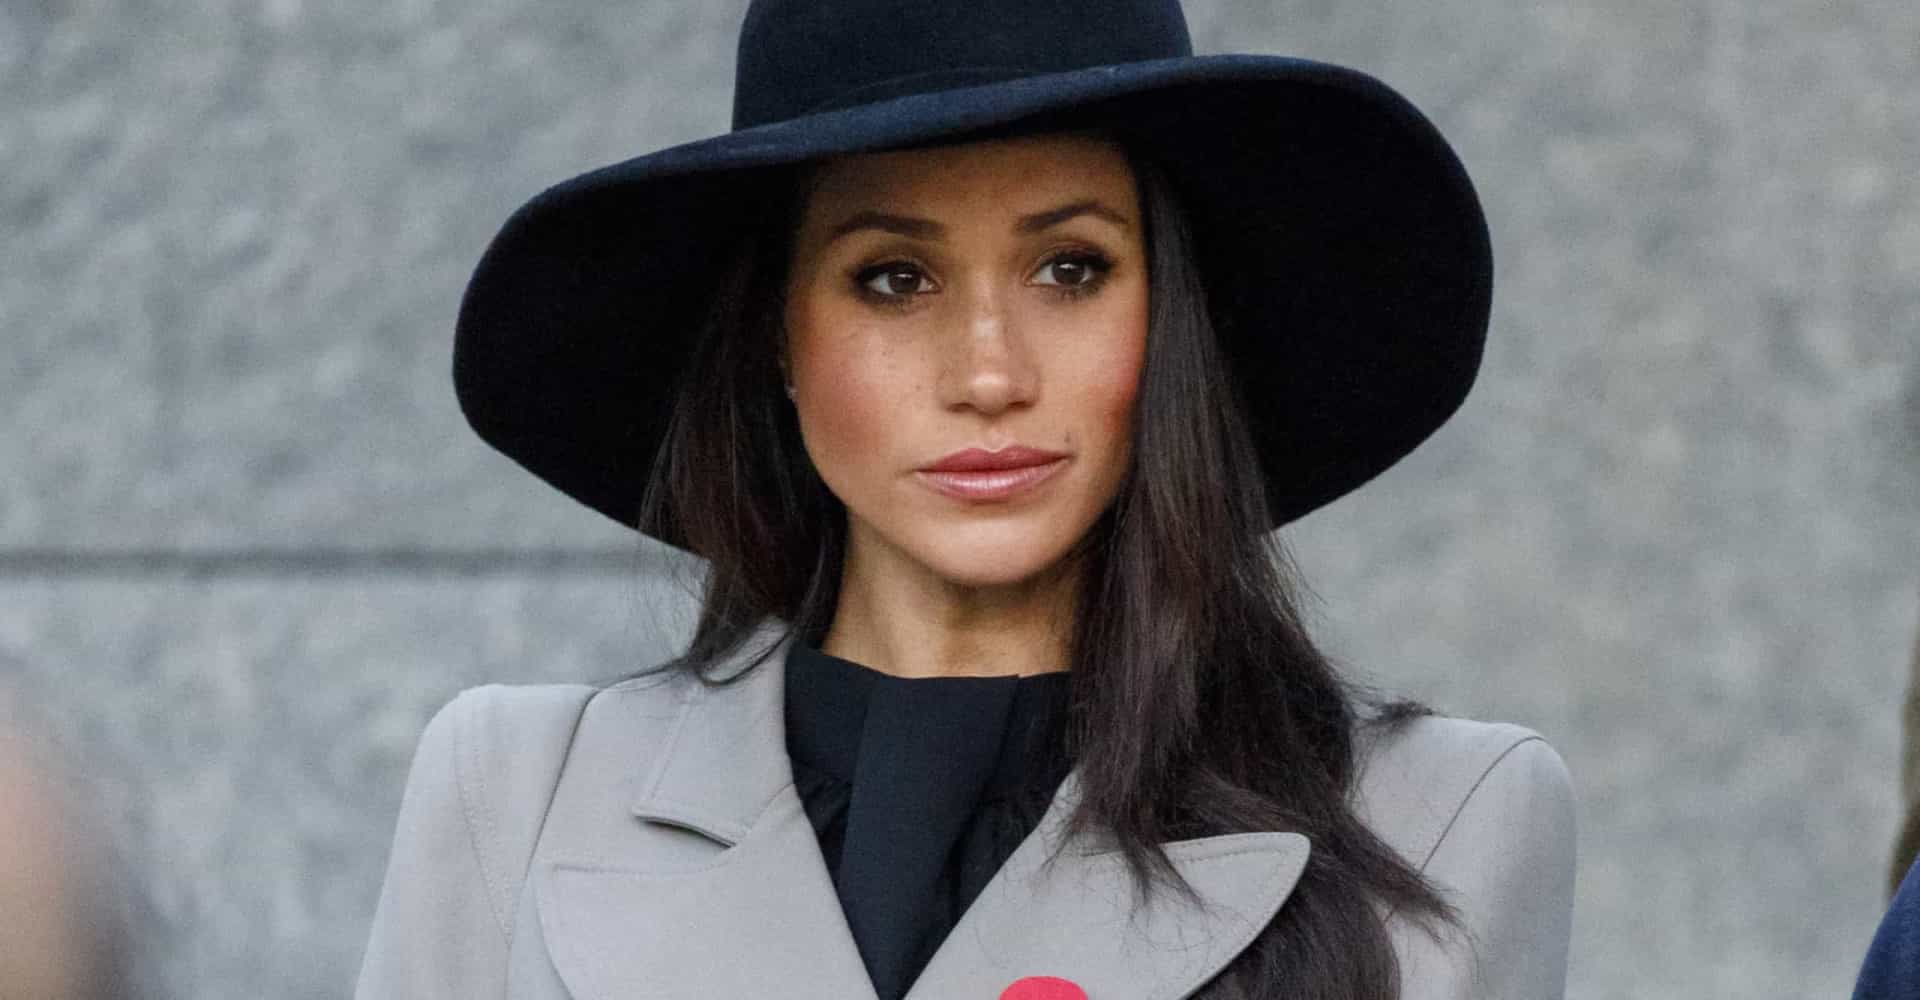 Meghan Markle's family drama: everything you need to know